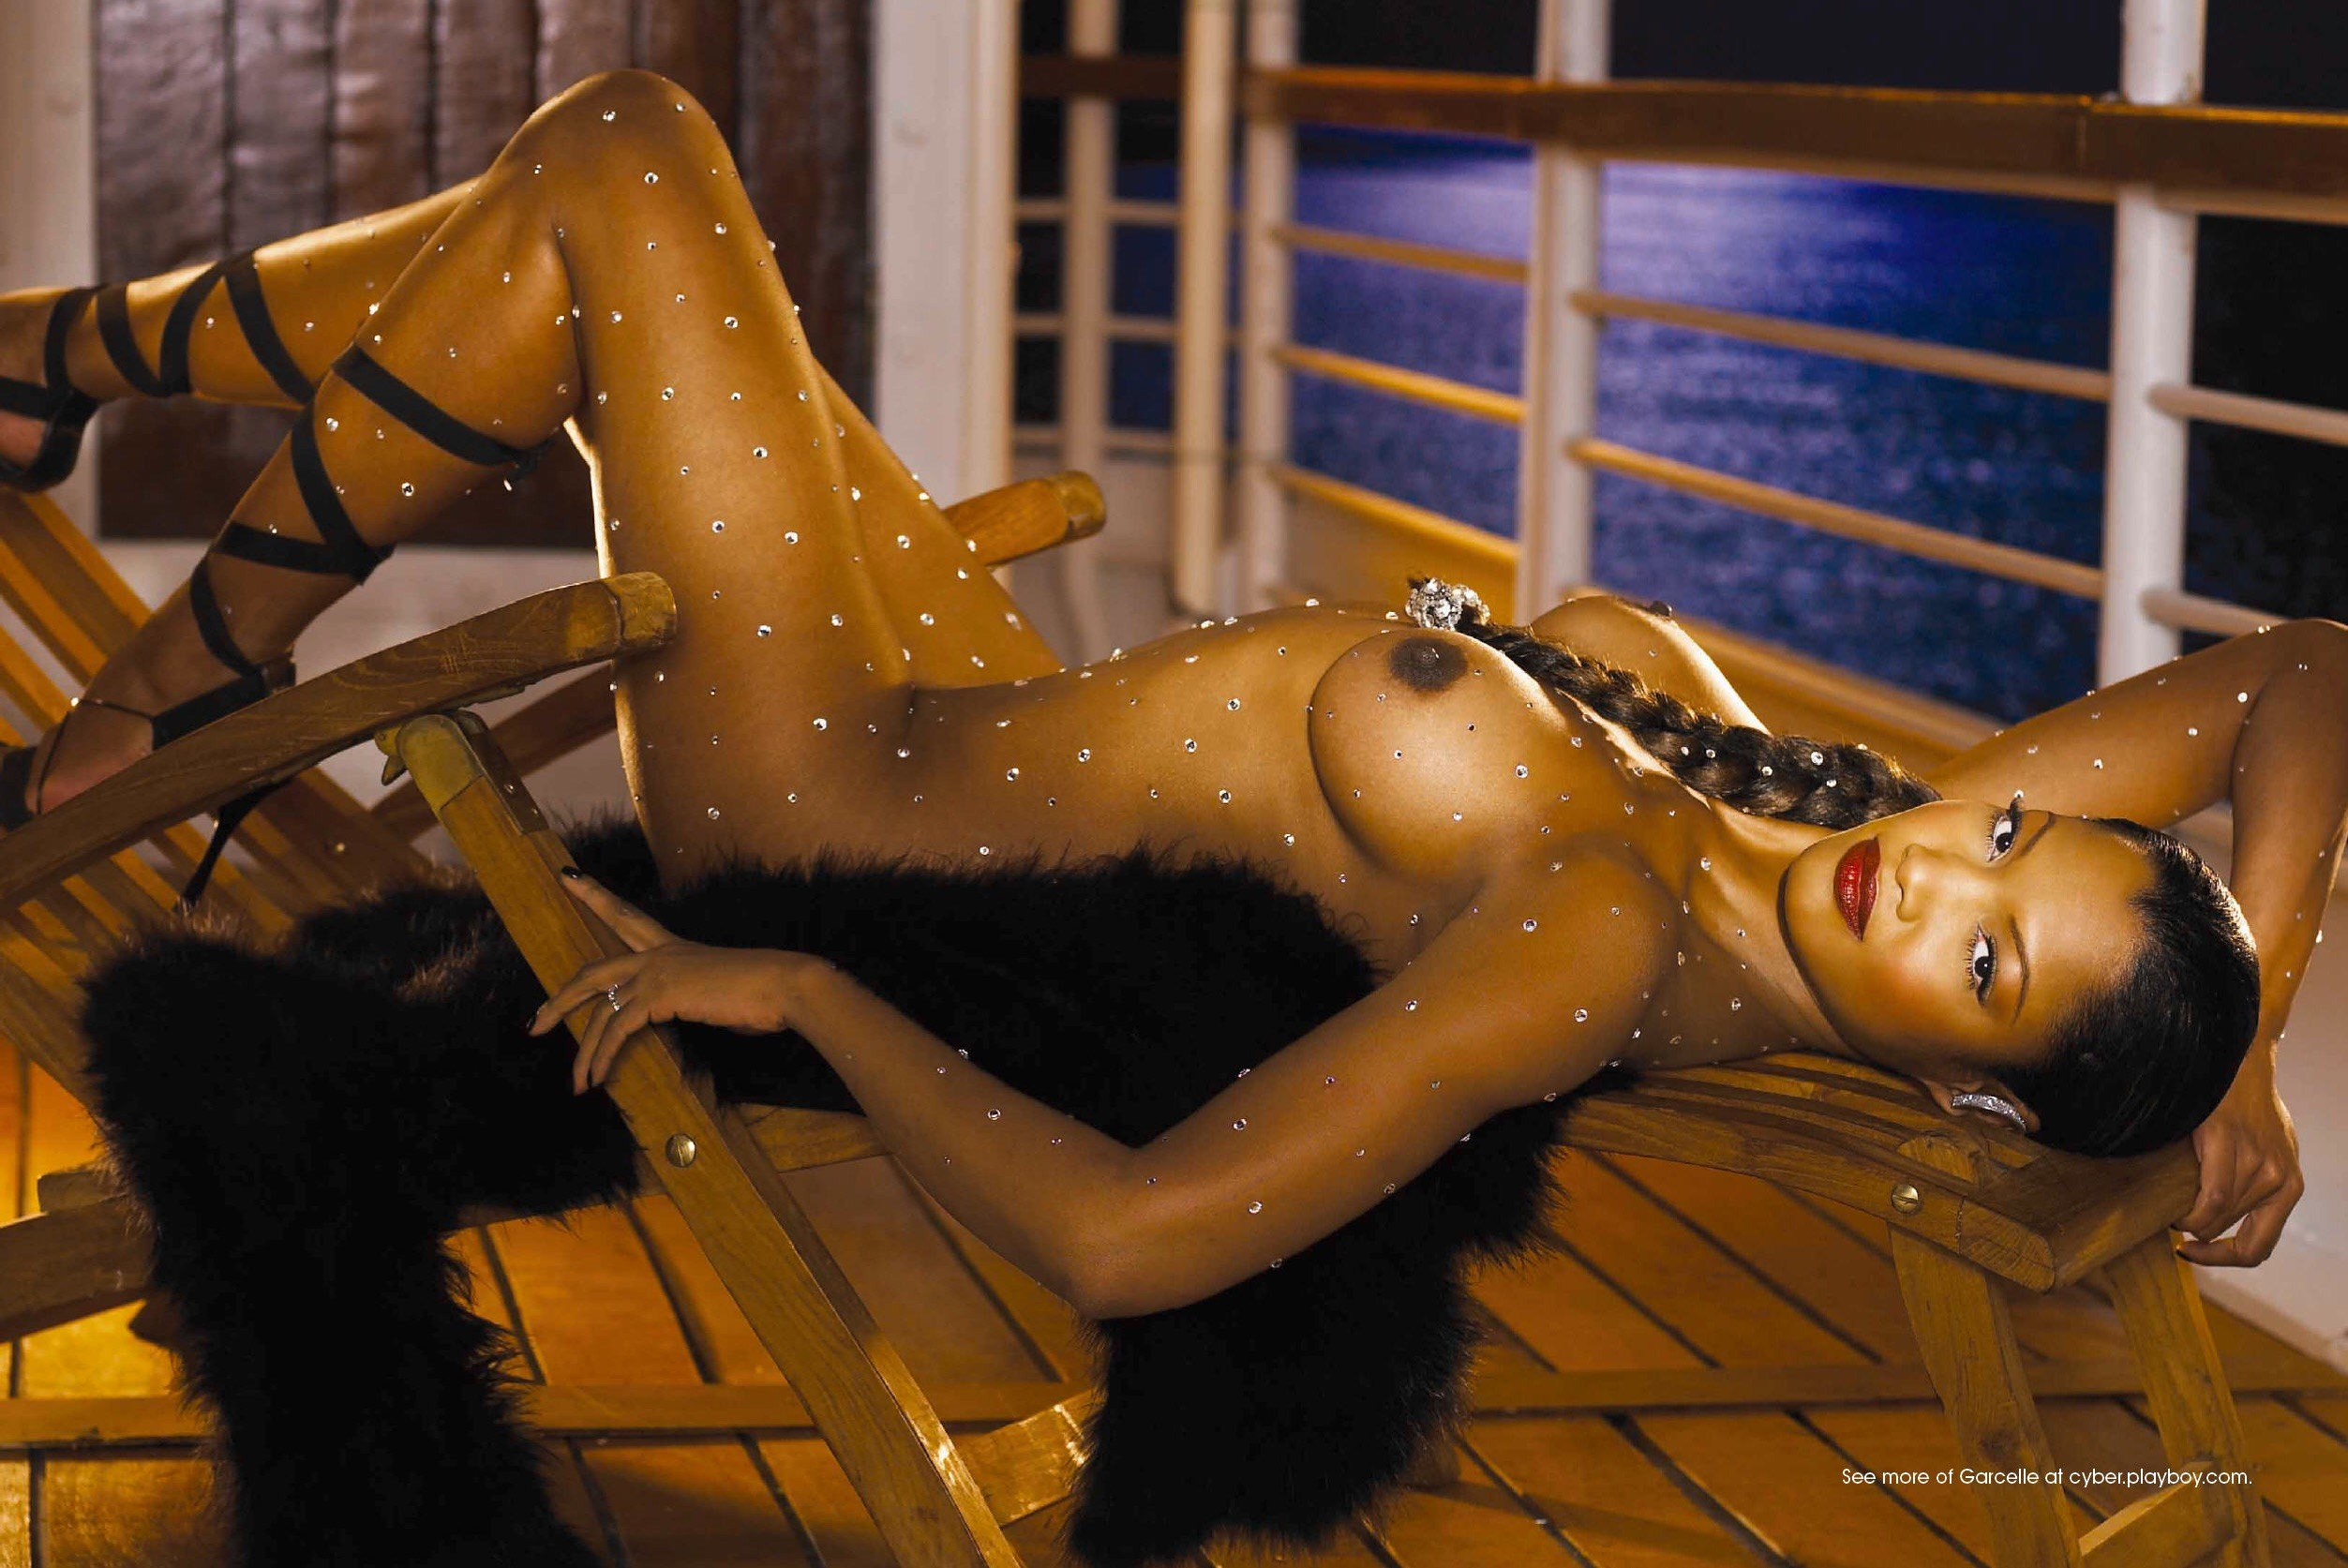 garcelle-beauvais-tittys-in-camel-toe-female-ass